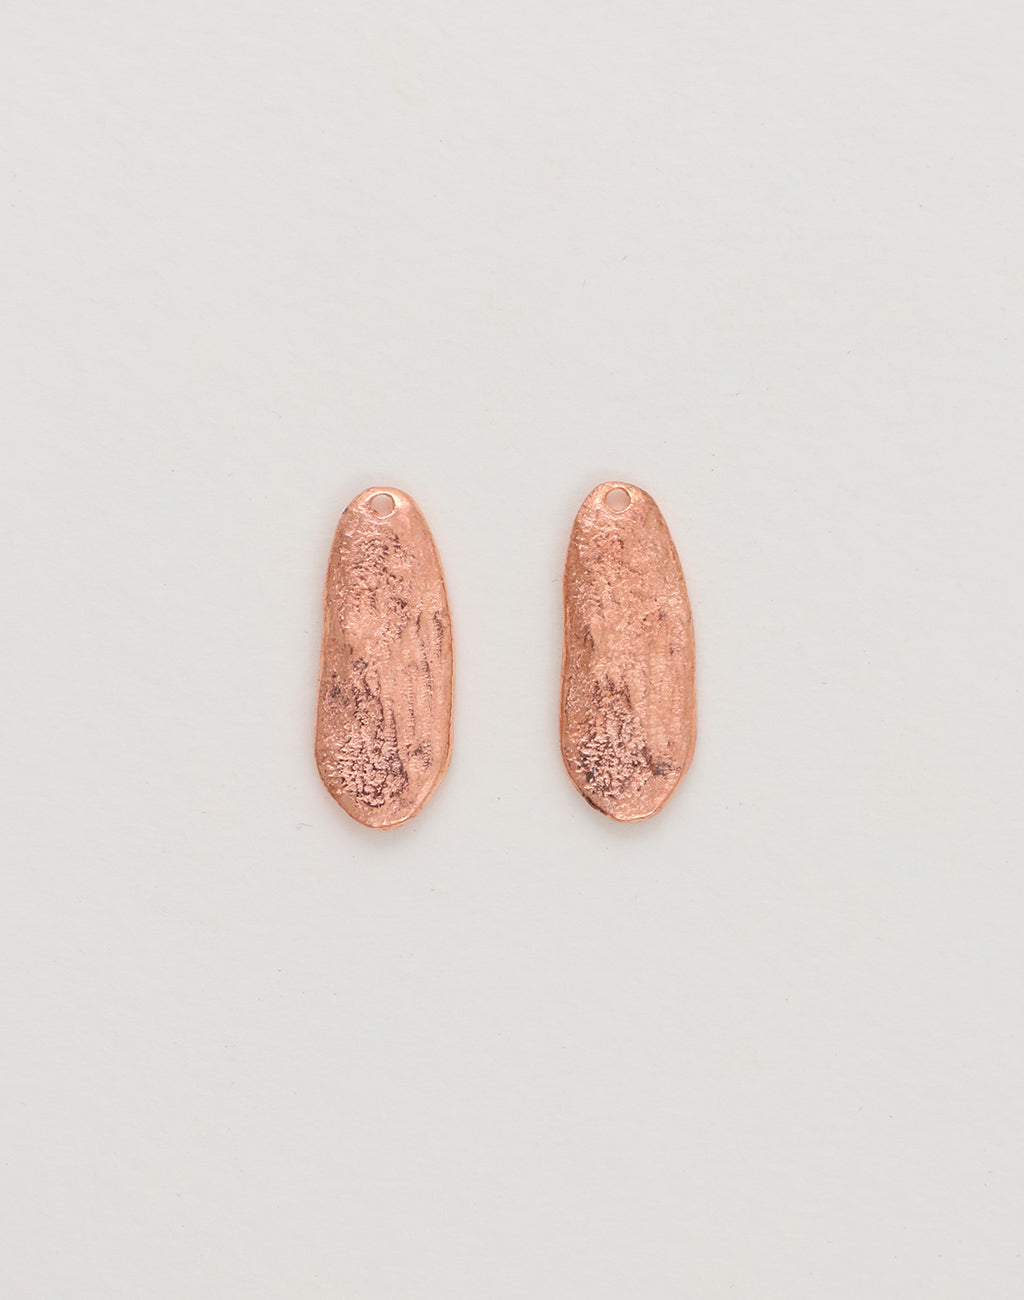 Organic Oval, 22x10mm, (2pc)